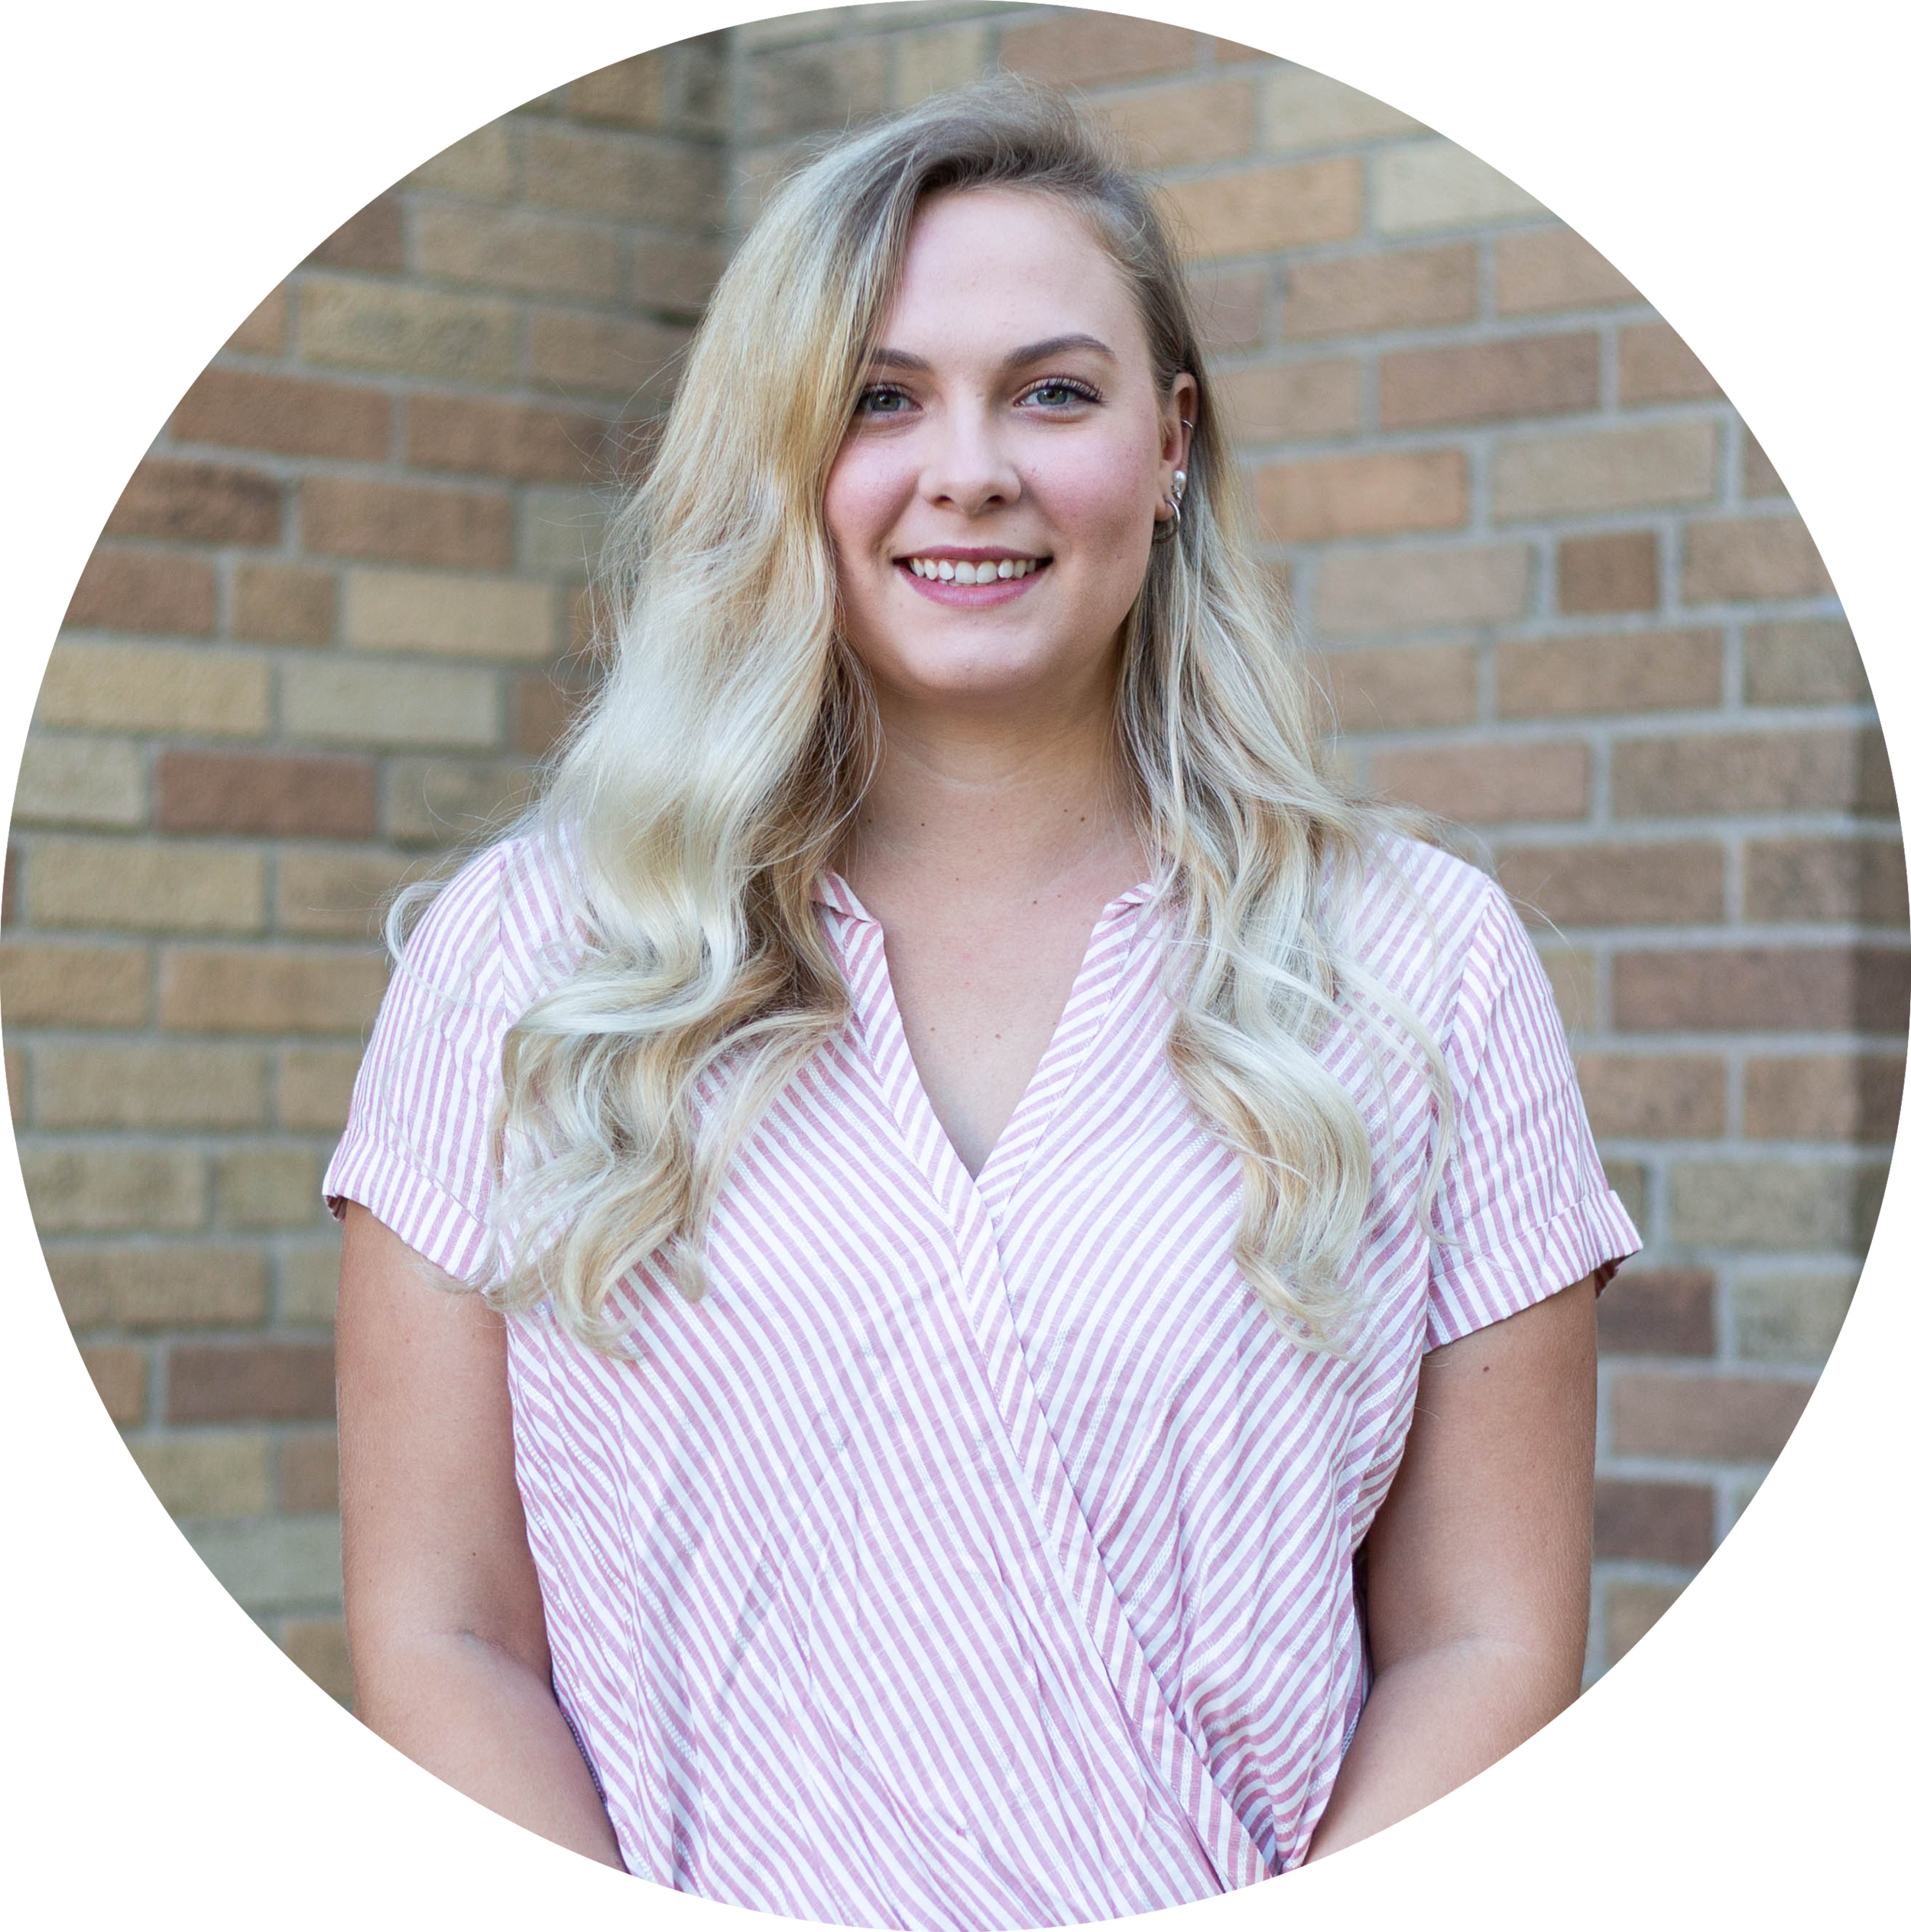 Hometown: Fowler, IN  Graduated from IUPUI in 2018  This is Emily's 1st year on Staff